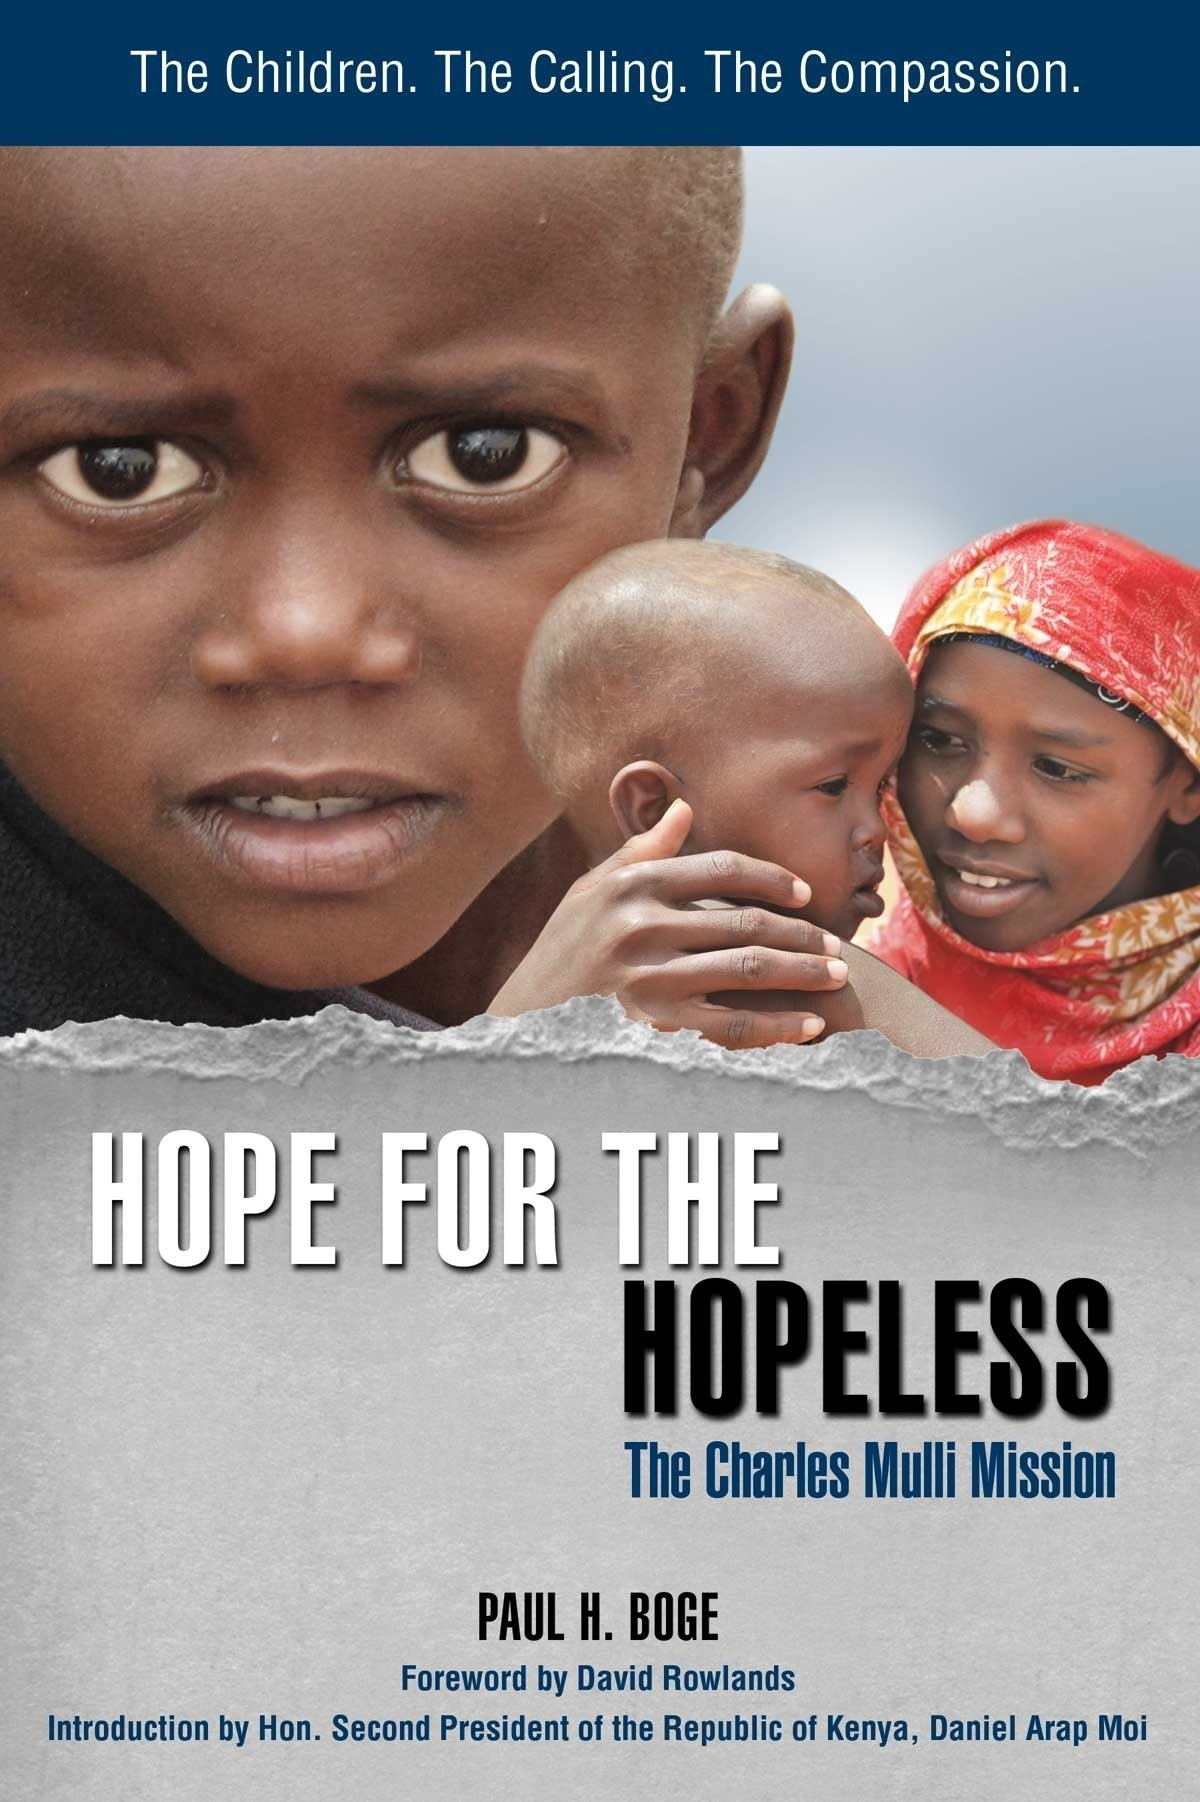 Hope for the Hopeless: The Charles Mulli Mission